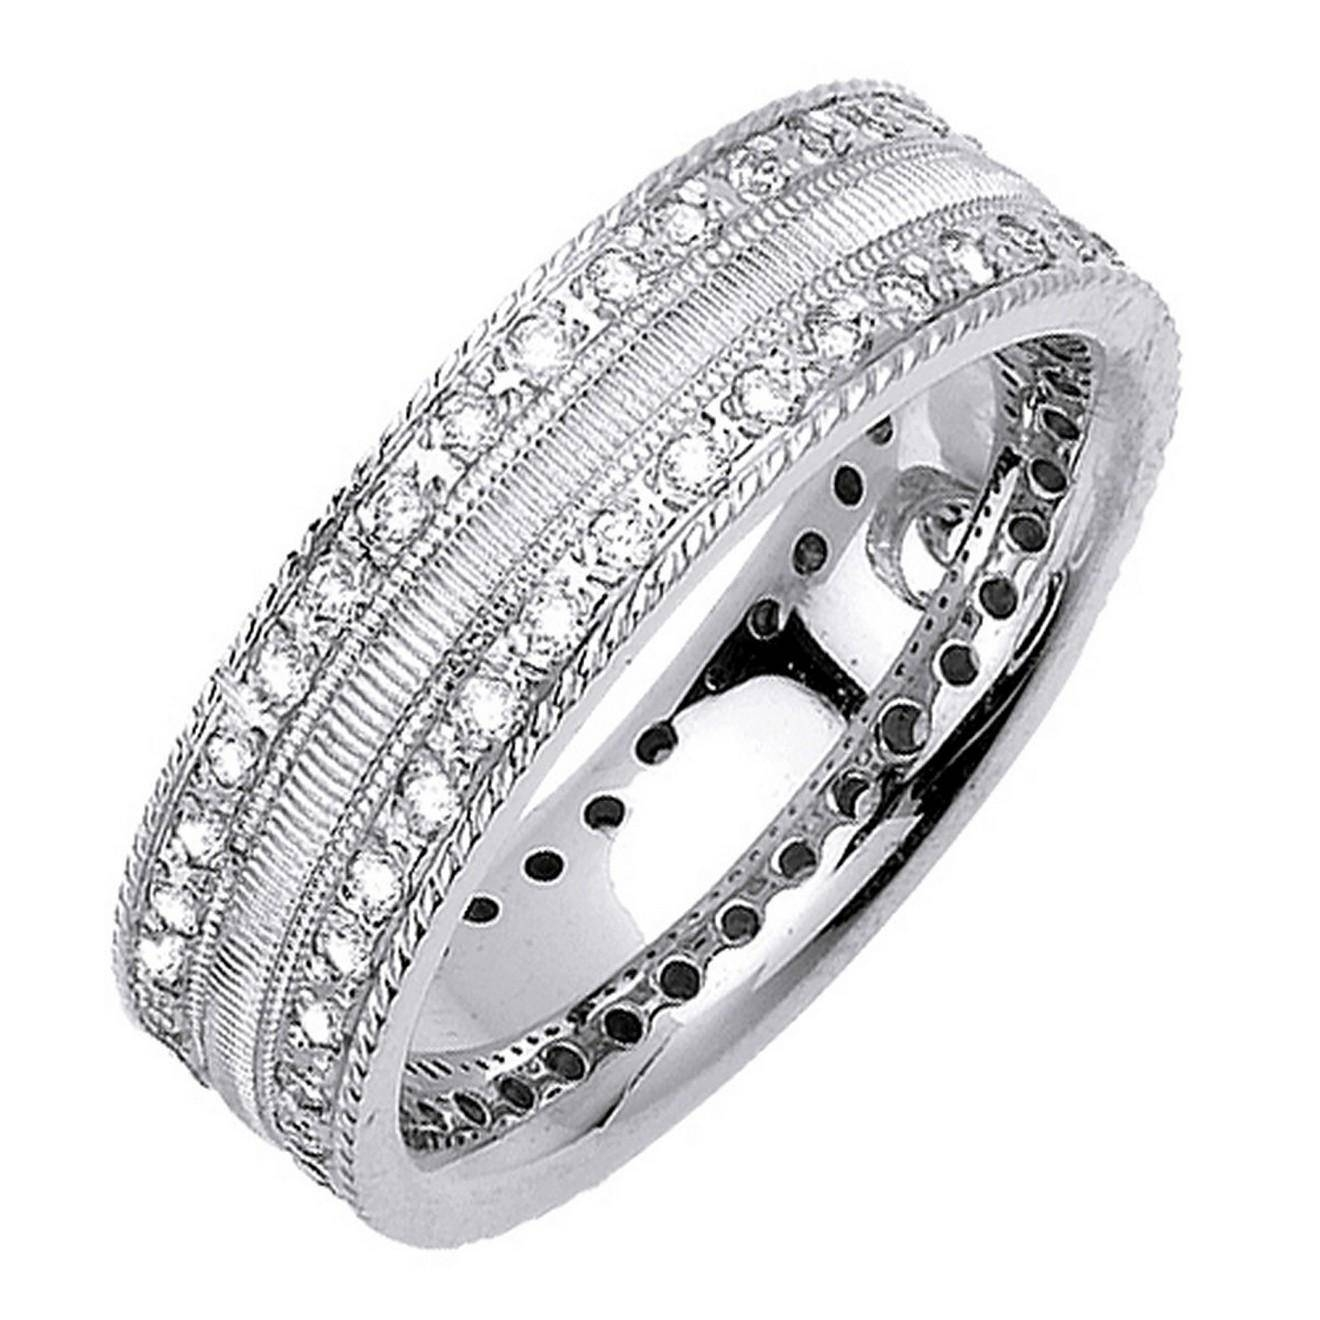 Zales Engagement Rings For Men 1 – Ifec Ci Intended For Zales Mens Diamond Wedding Bands (View 13 of 15)